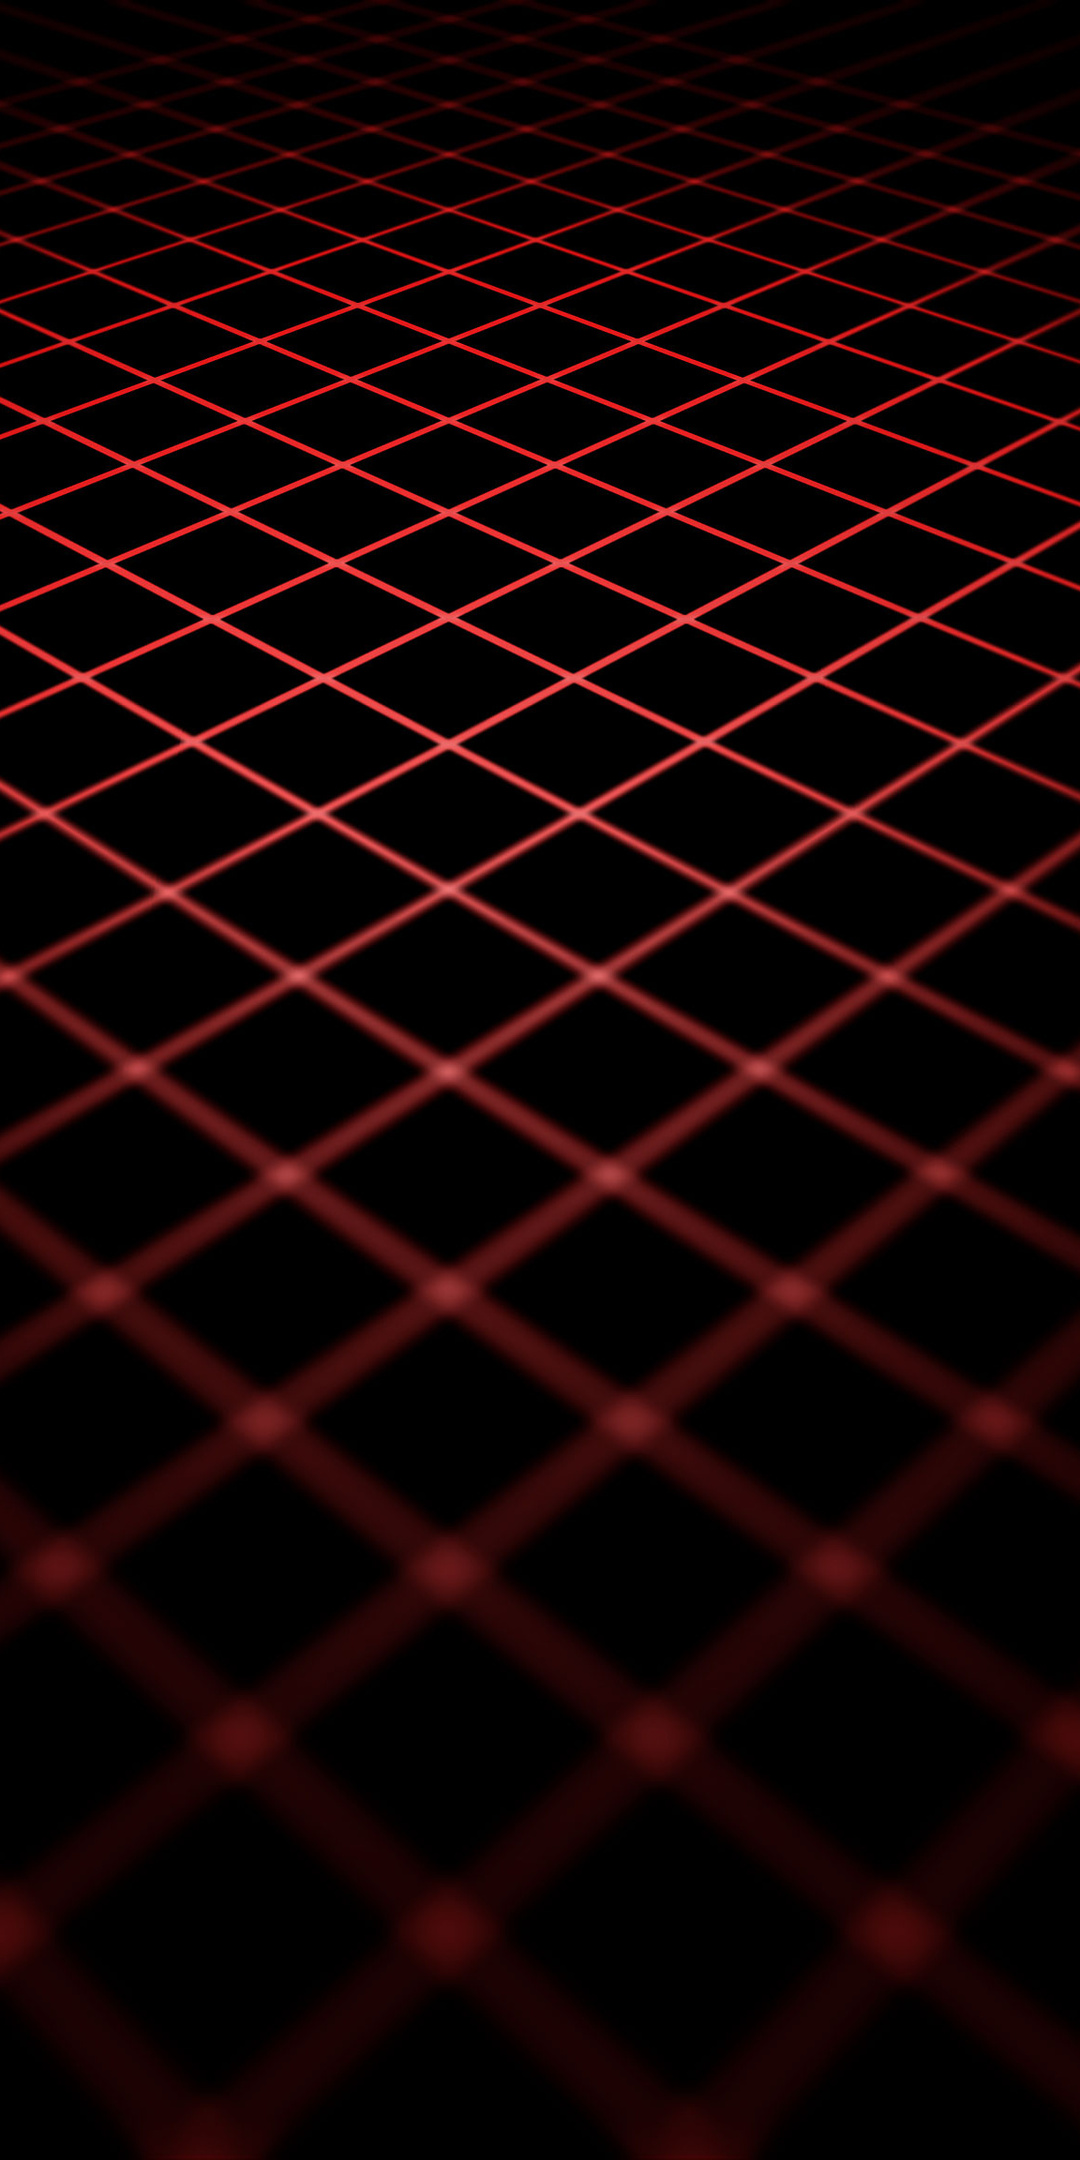 3d-abstract-lines-dq.jpg